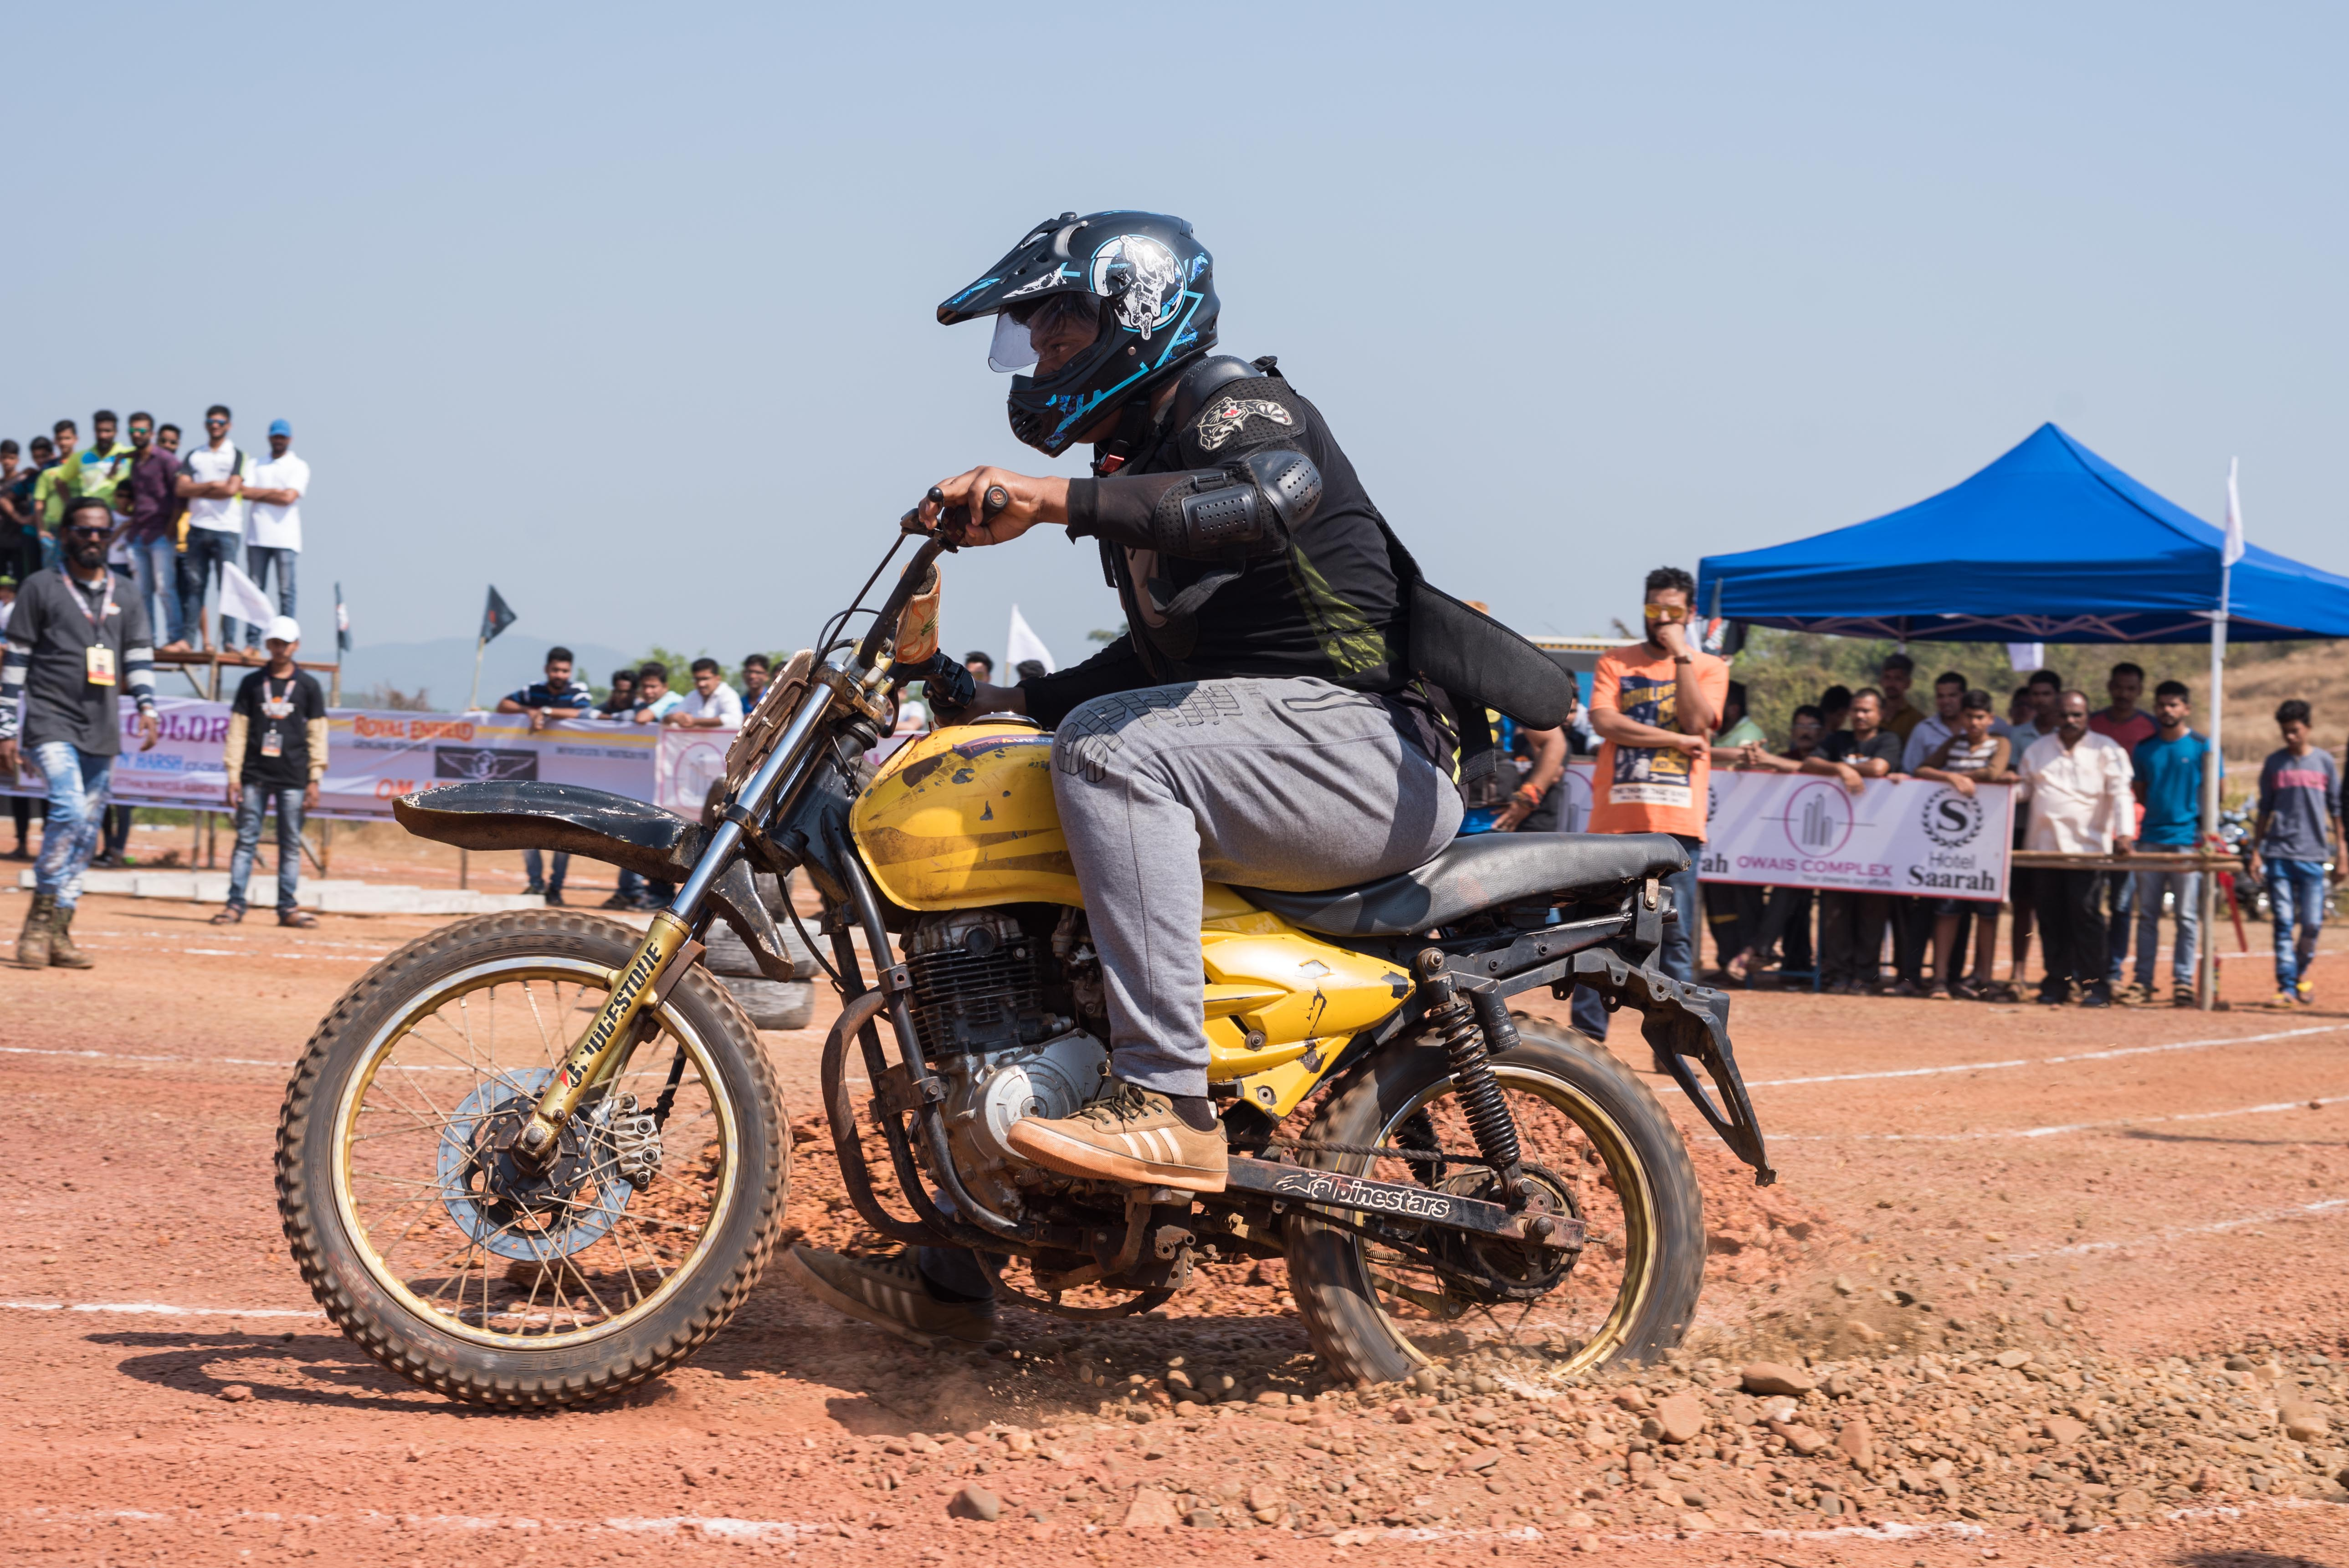 The Riders Off-Road Challenge